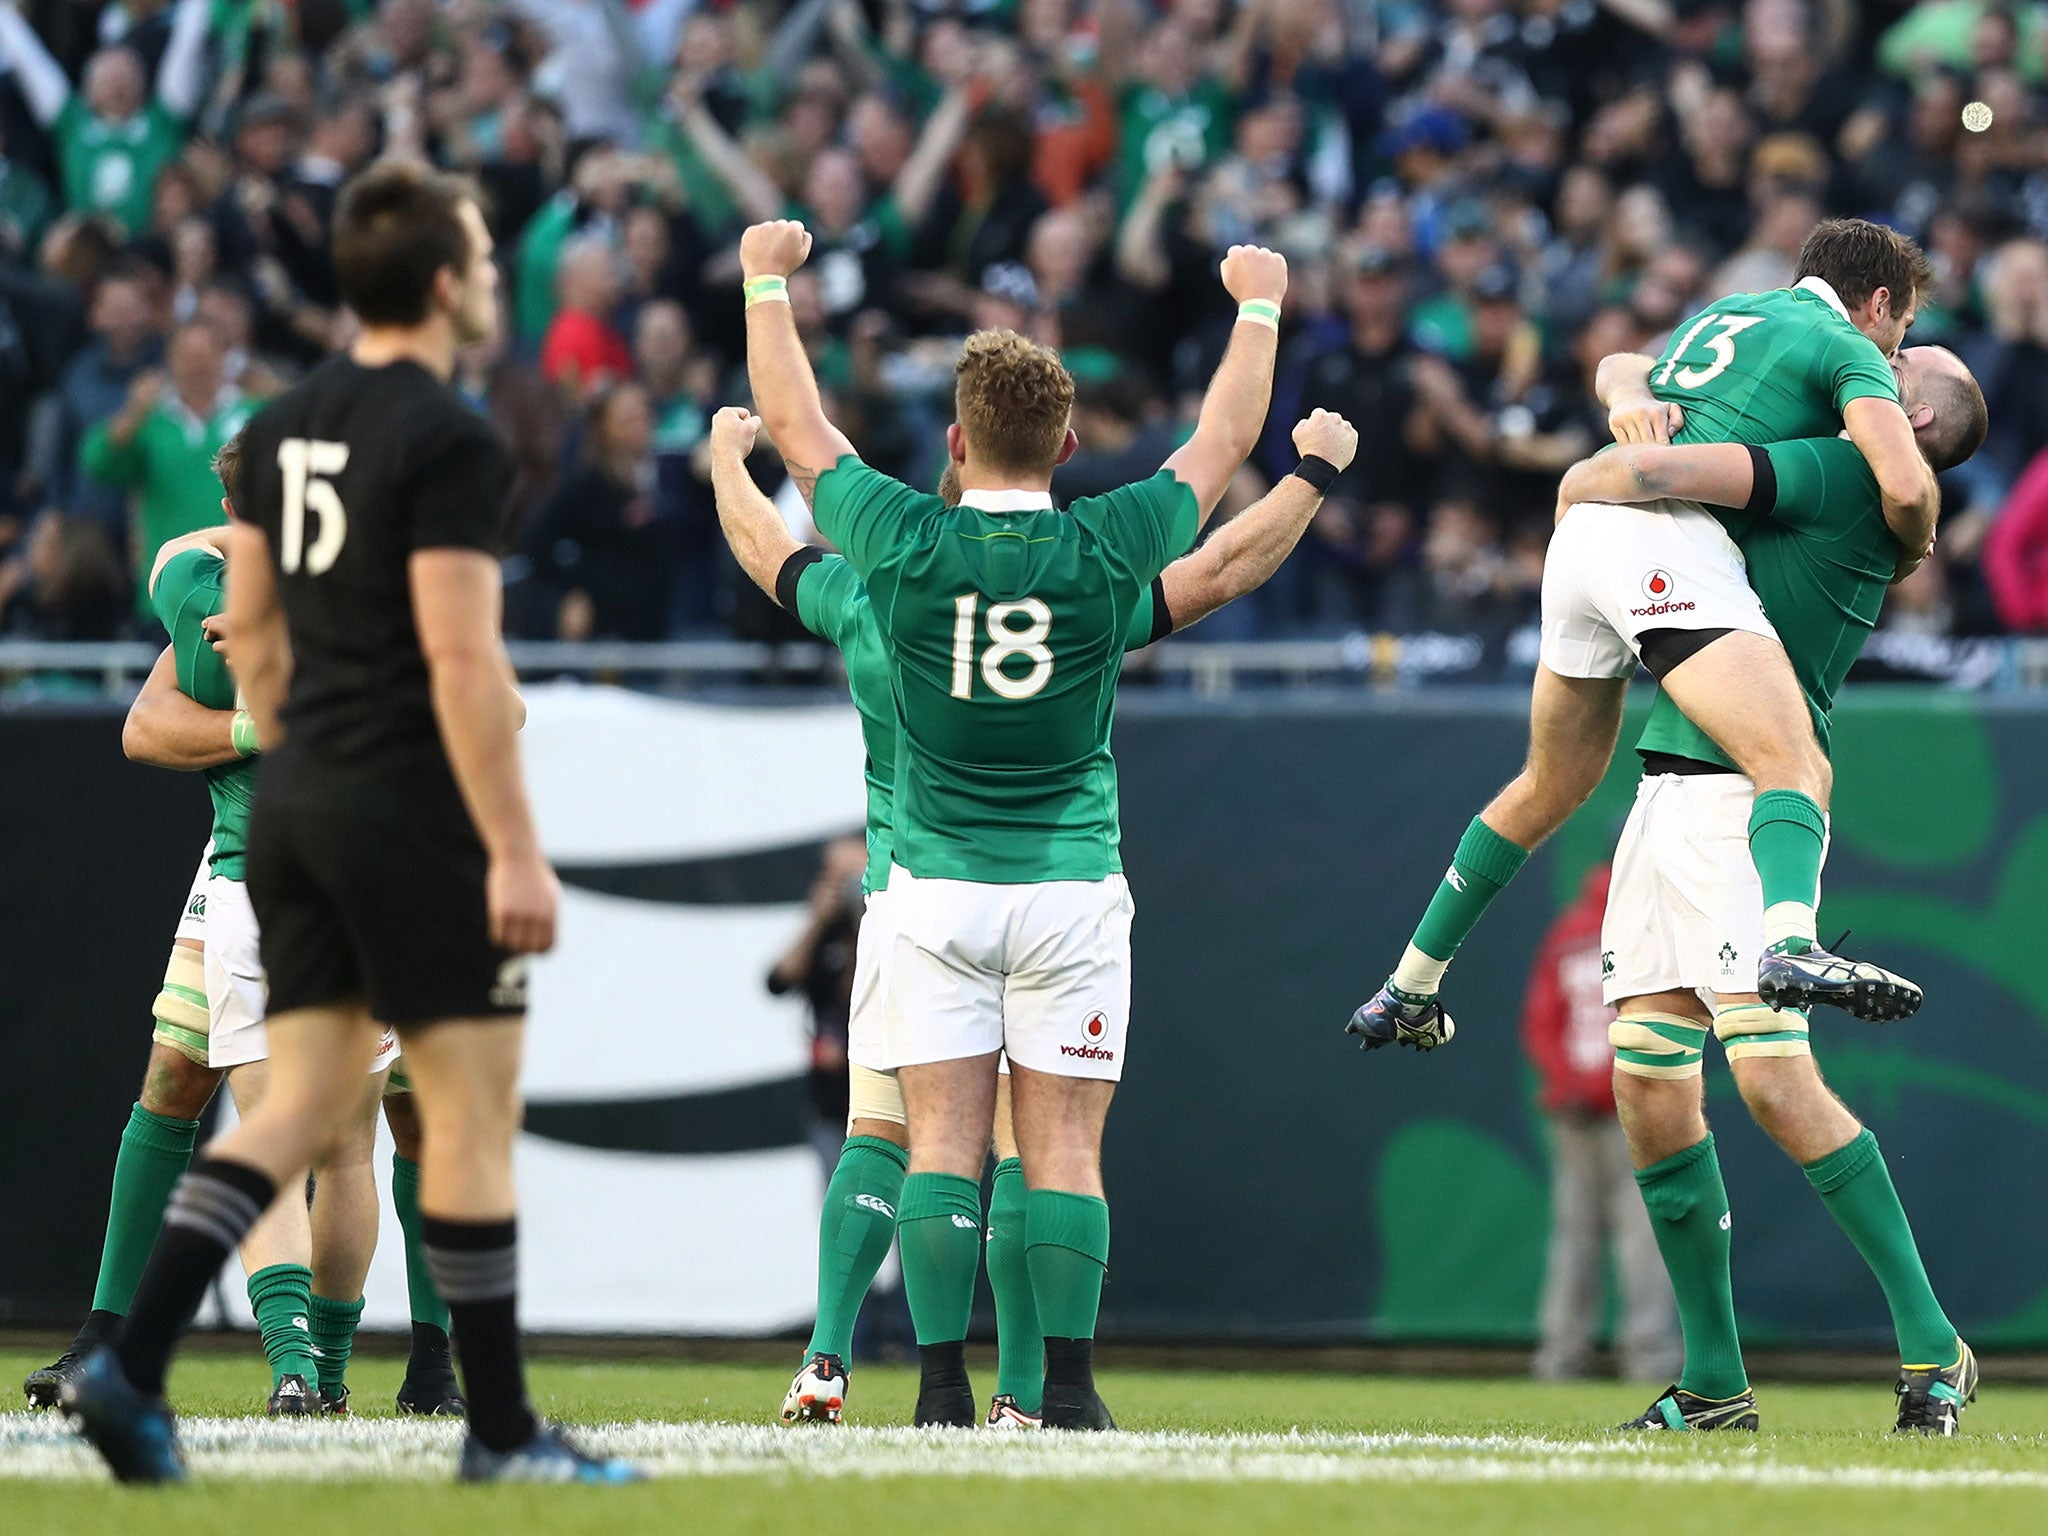 Ireland vs New Zealand: The numbers do not lie - there is only one show in town this weekend and it's in Dublin